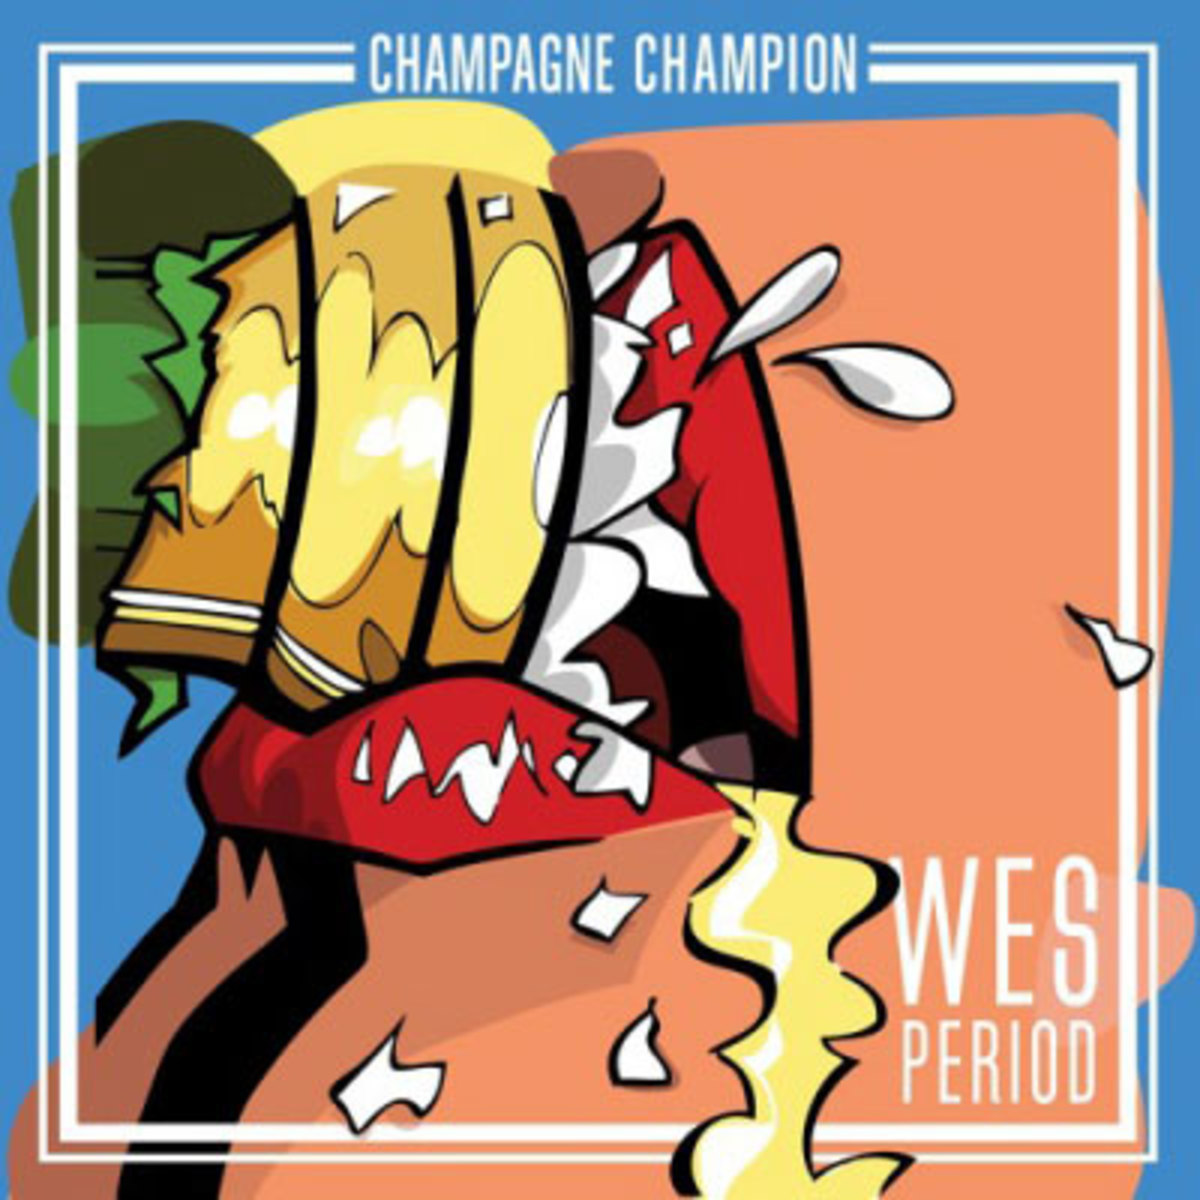 wes-period-champagne-champion.jpg